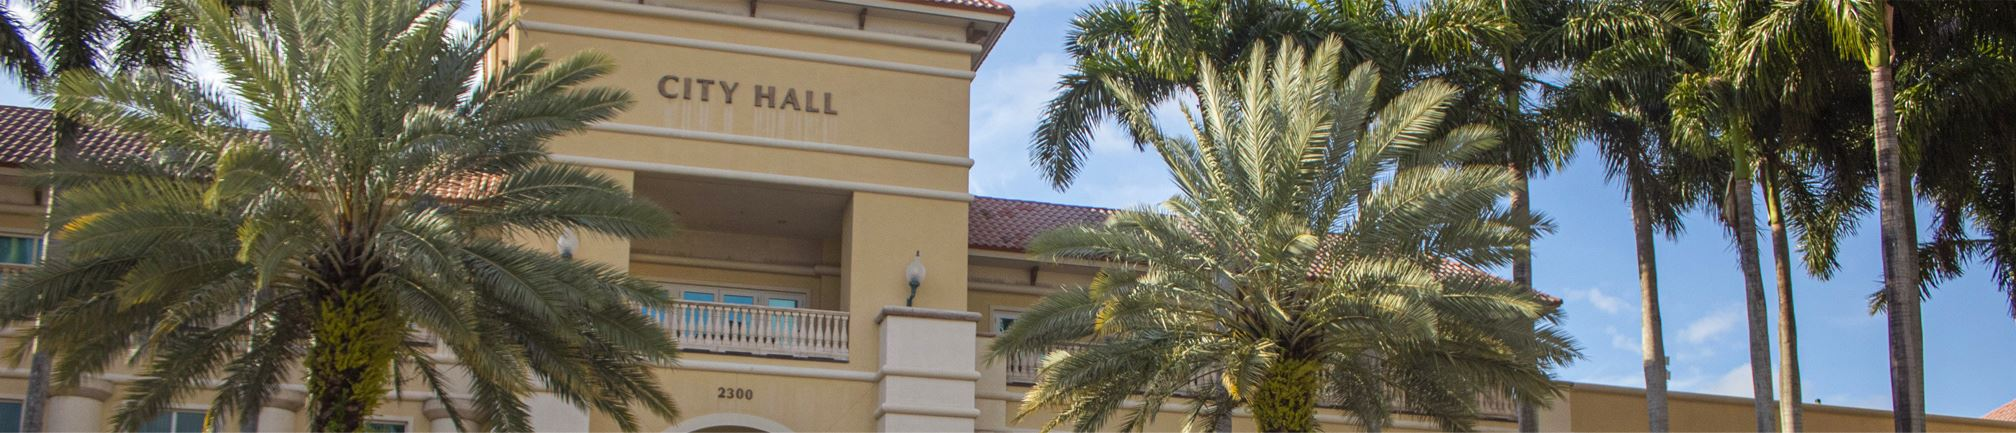 CITY OF MIRAMAR APPOINTS FIRST JAMAICAN-BORN CITY MANAGER